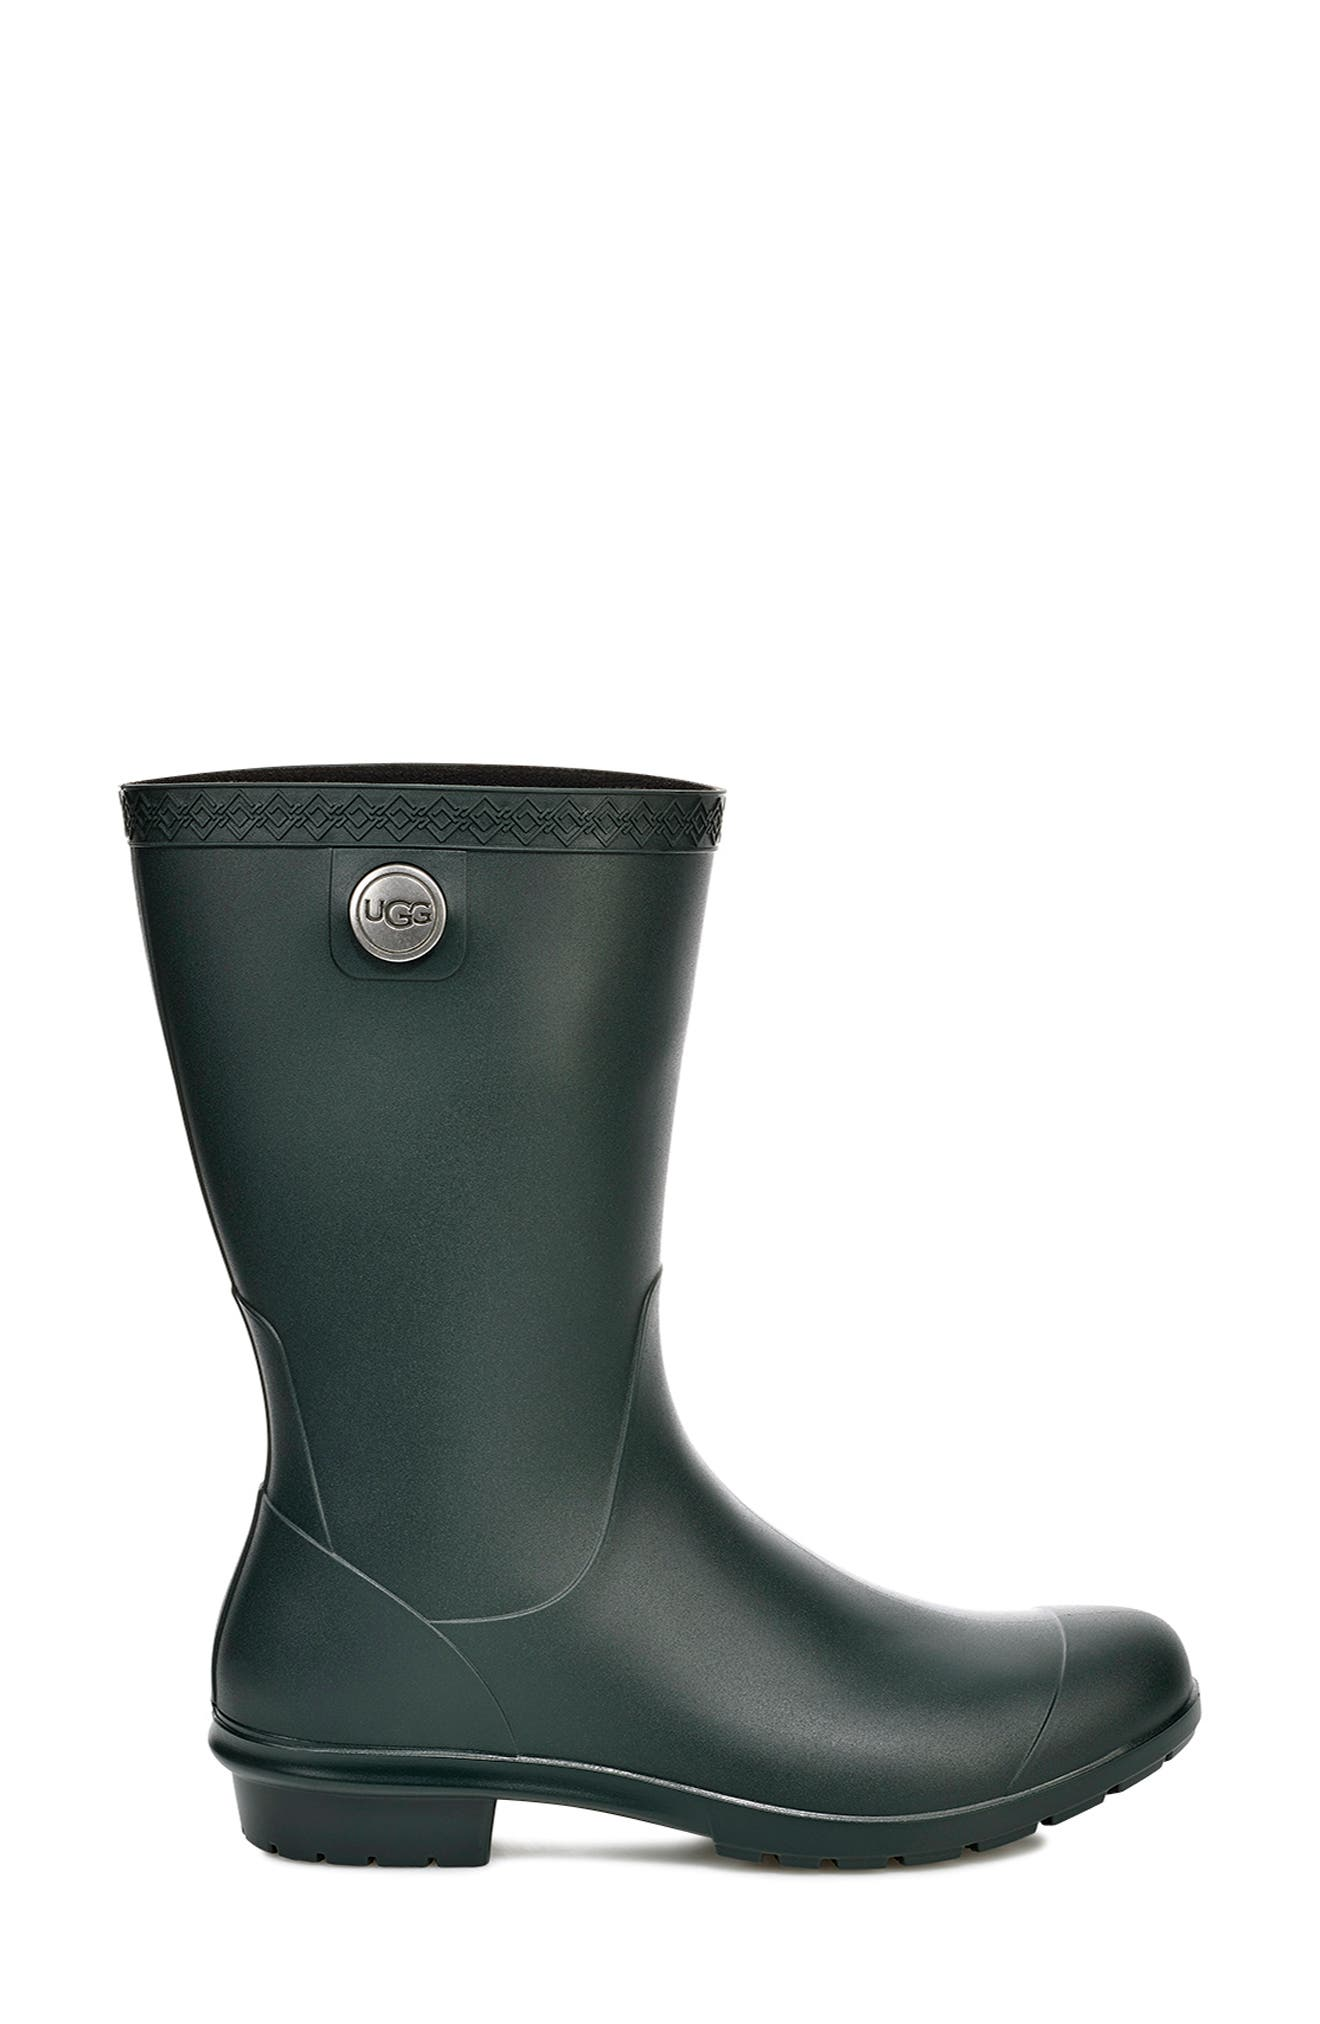 Sienna Rain Boot,                             Alternate thumbnail 3, color,                             OLIVE RUBBER